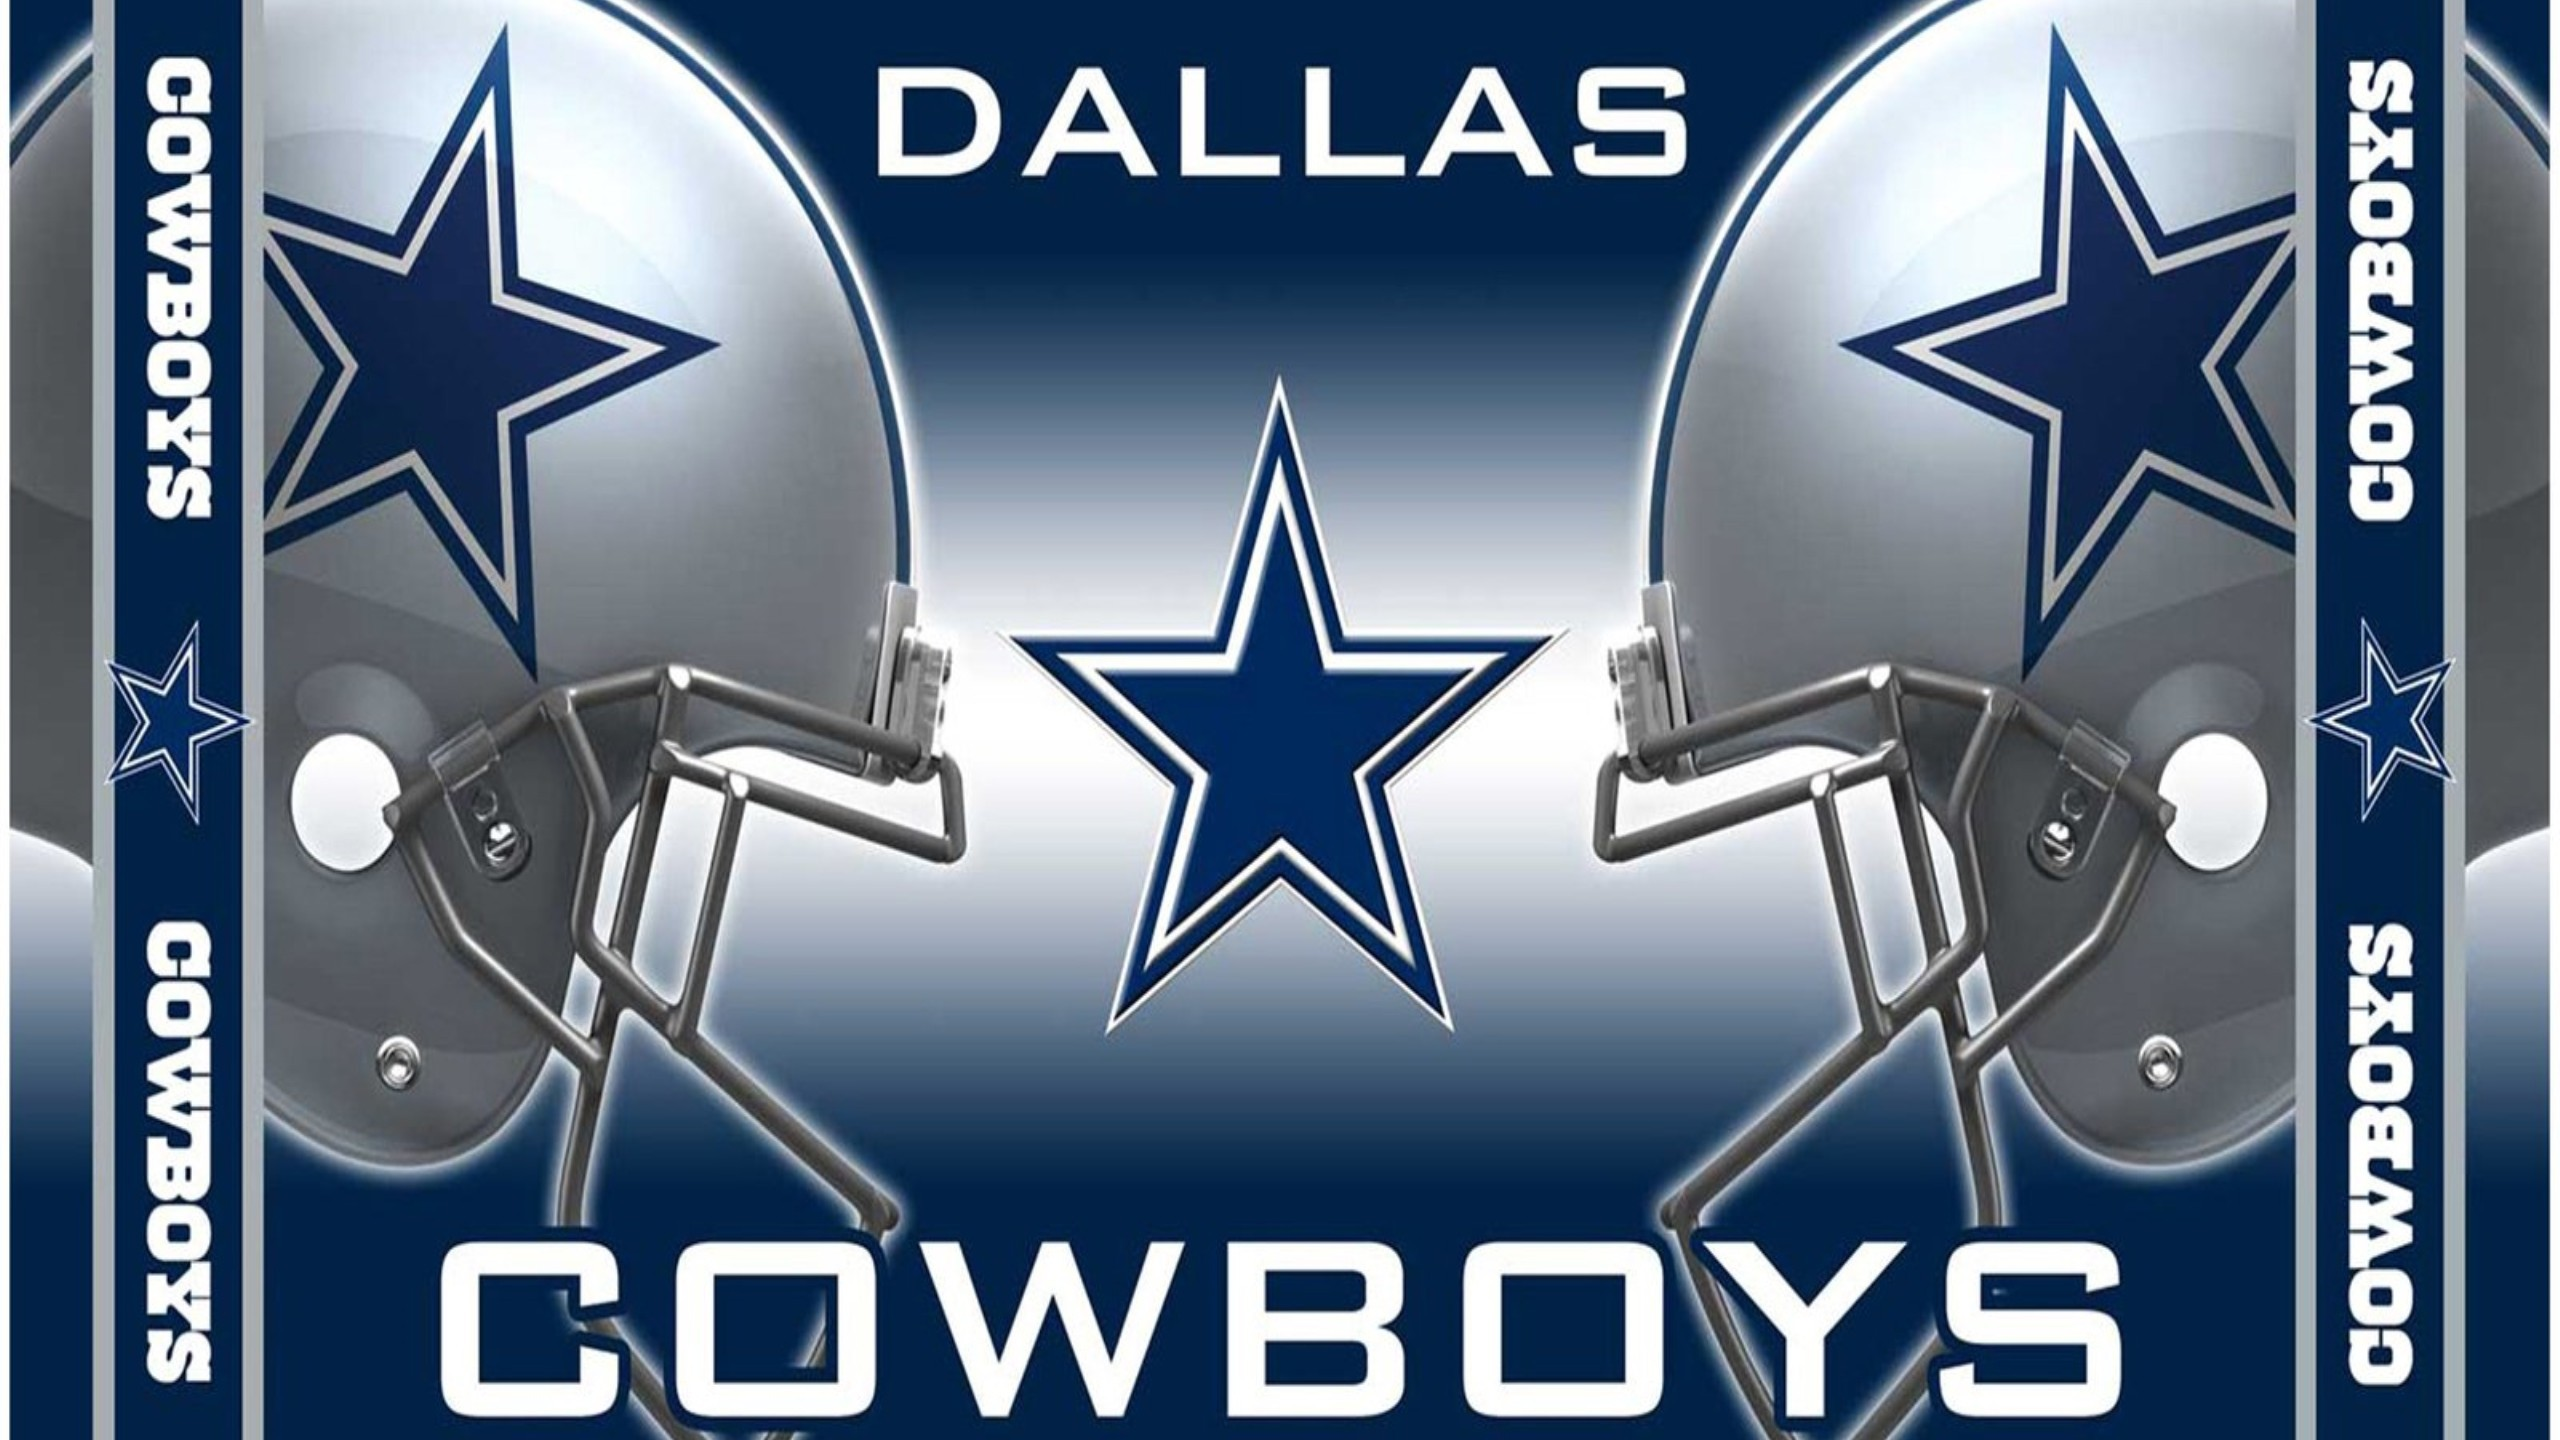 Dallas Cowboys Wallpapers Images Photos Pictures Backgrounds 2560x1440